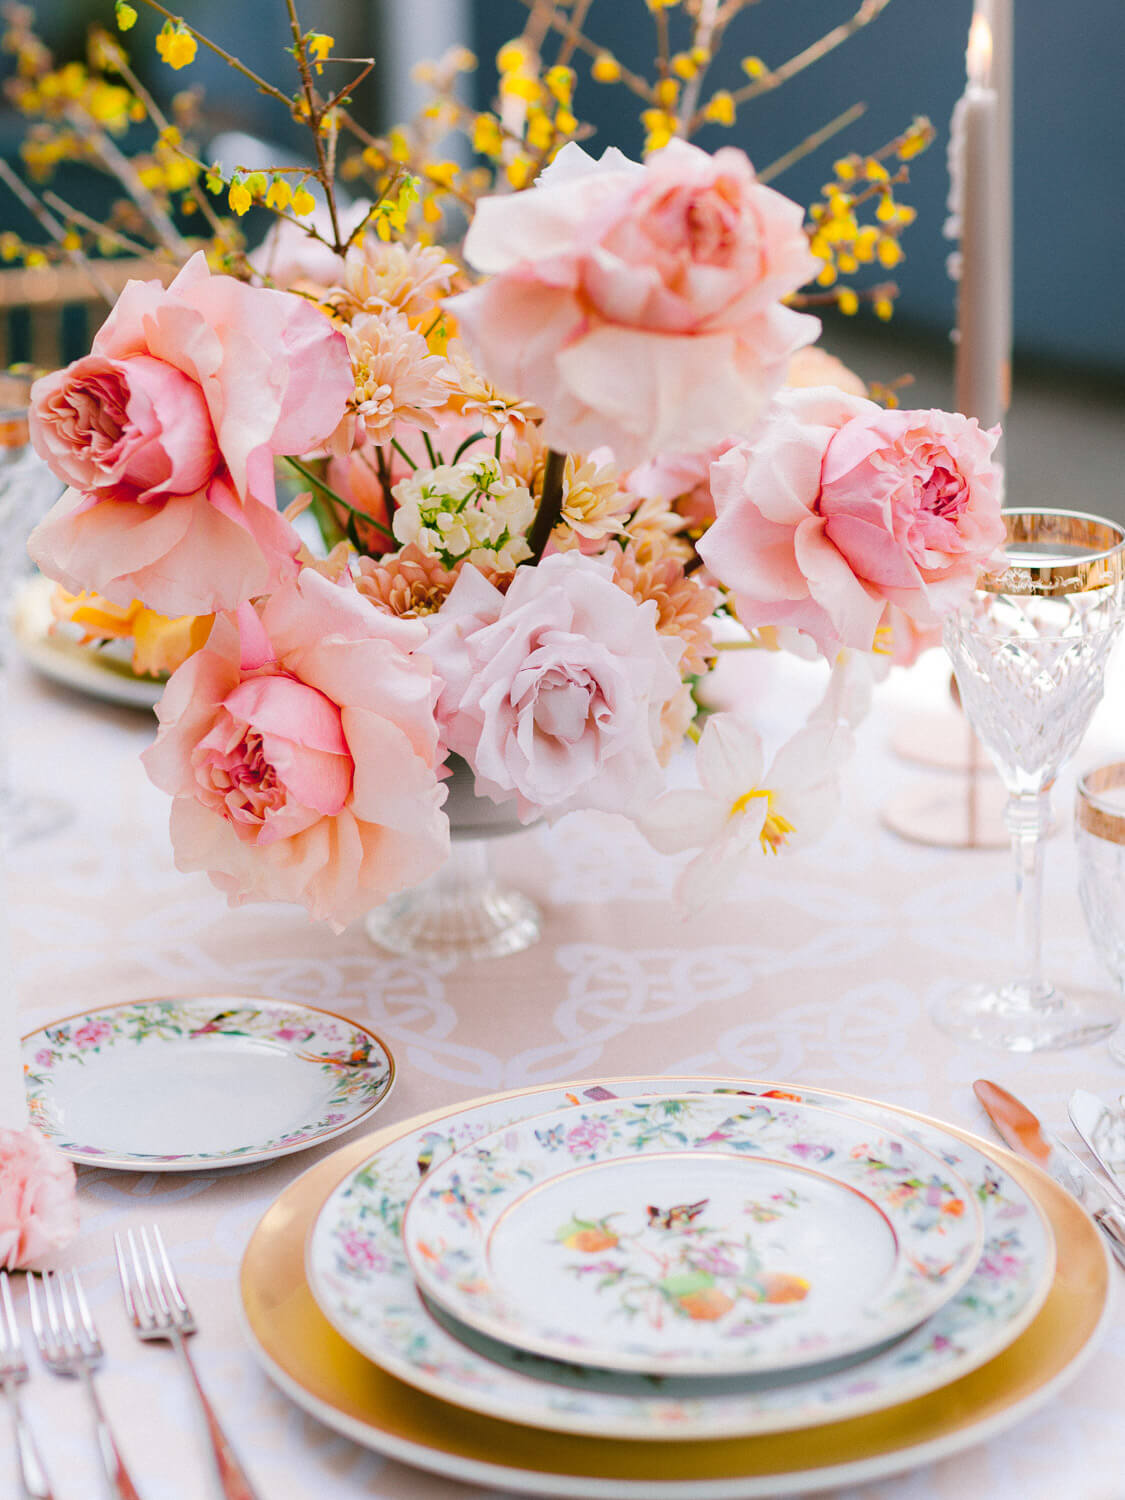 wedding reception table decoration with pink floral centrepiece by Portugal Wedding Photographer